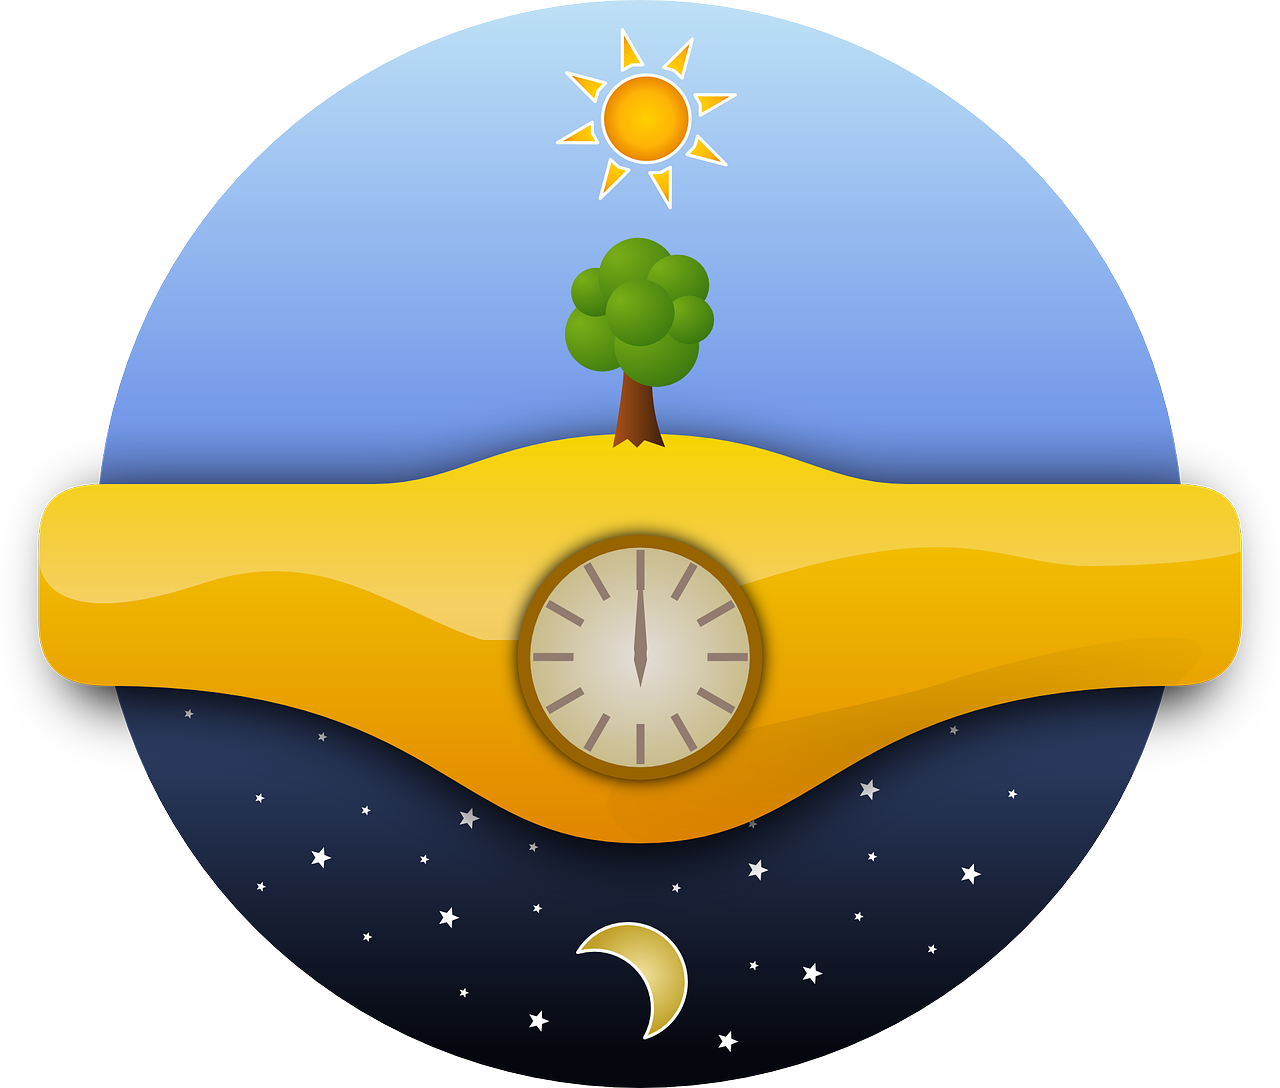 Noon time sun clipart graphic freeuse Two techniques for telling time without a watch - Outdoor Revival graphic freeuse